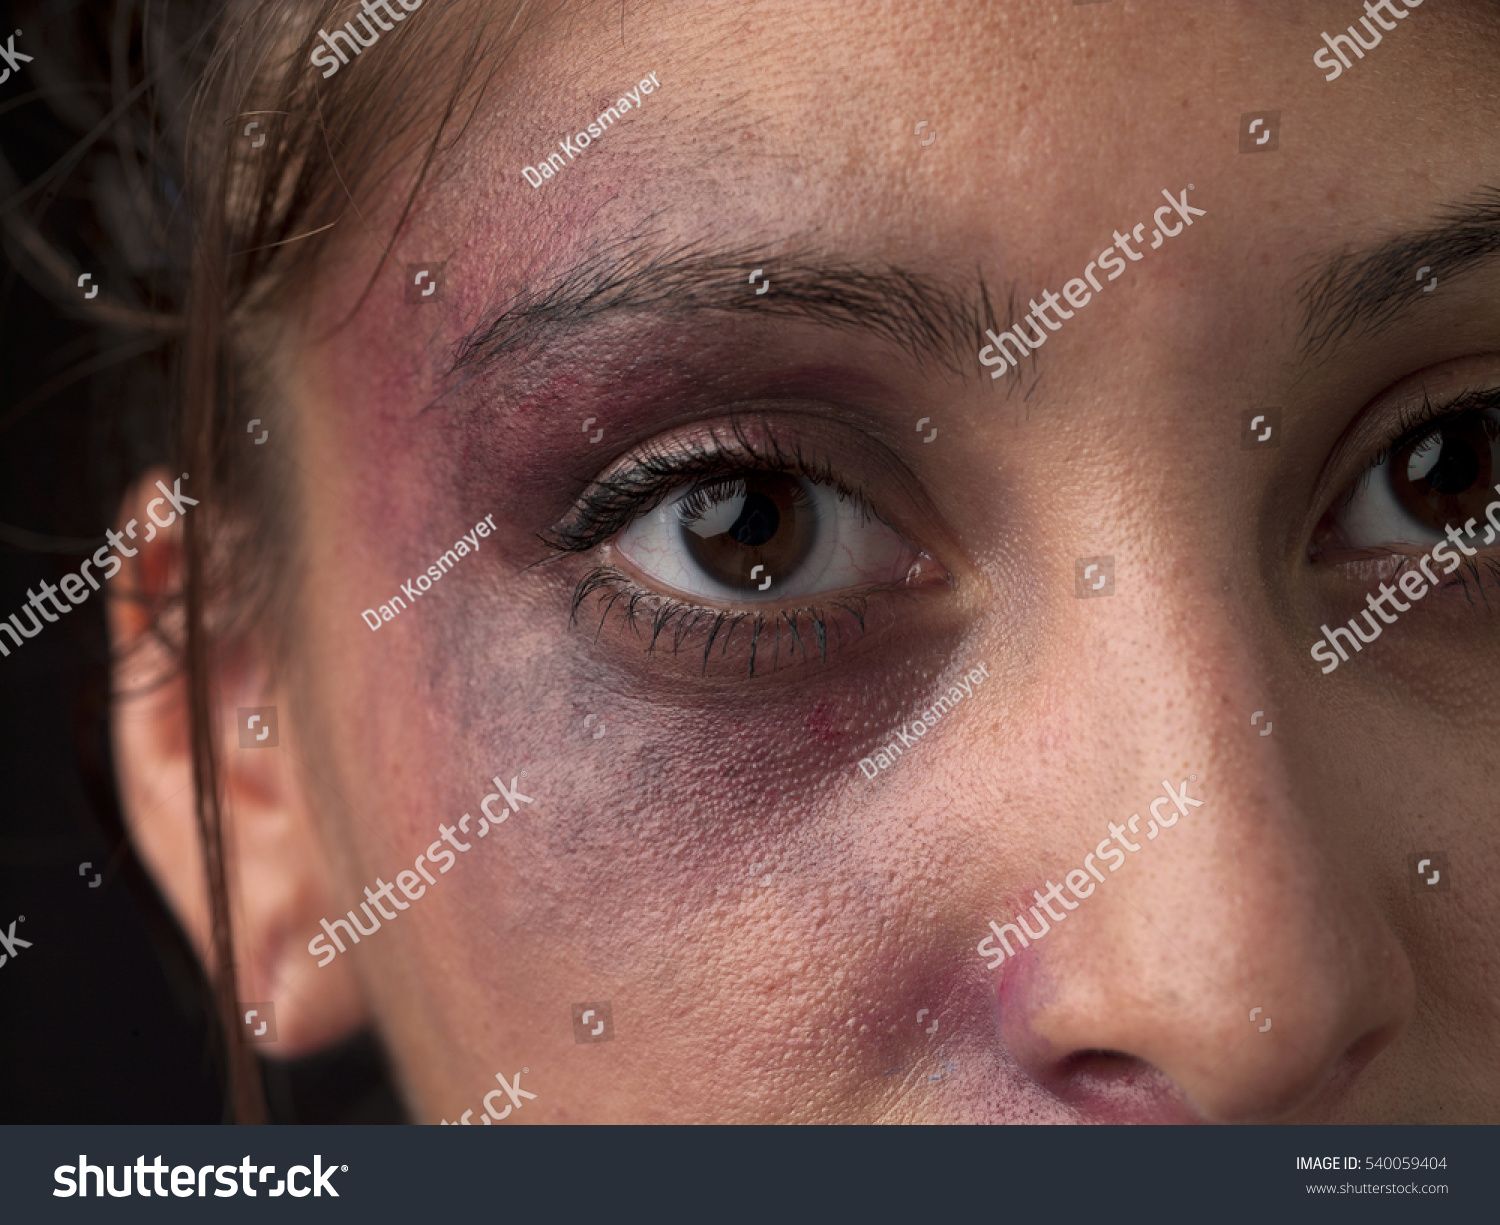 woman body facial injuries which can stock photo 540059404